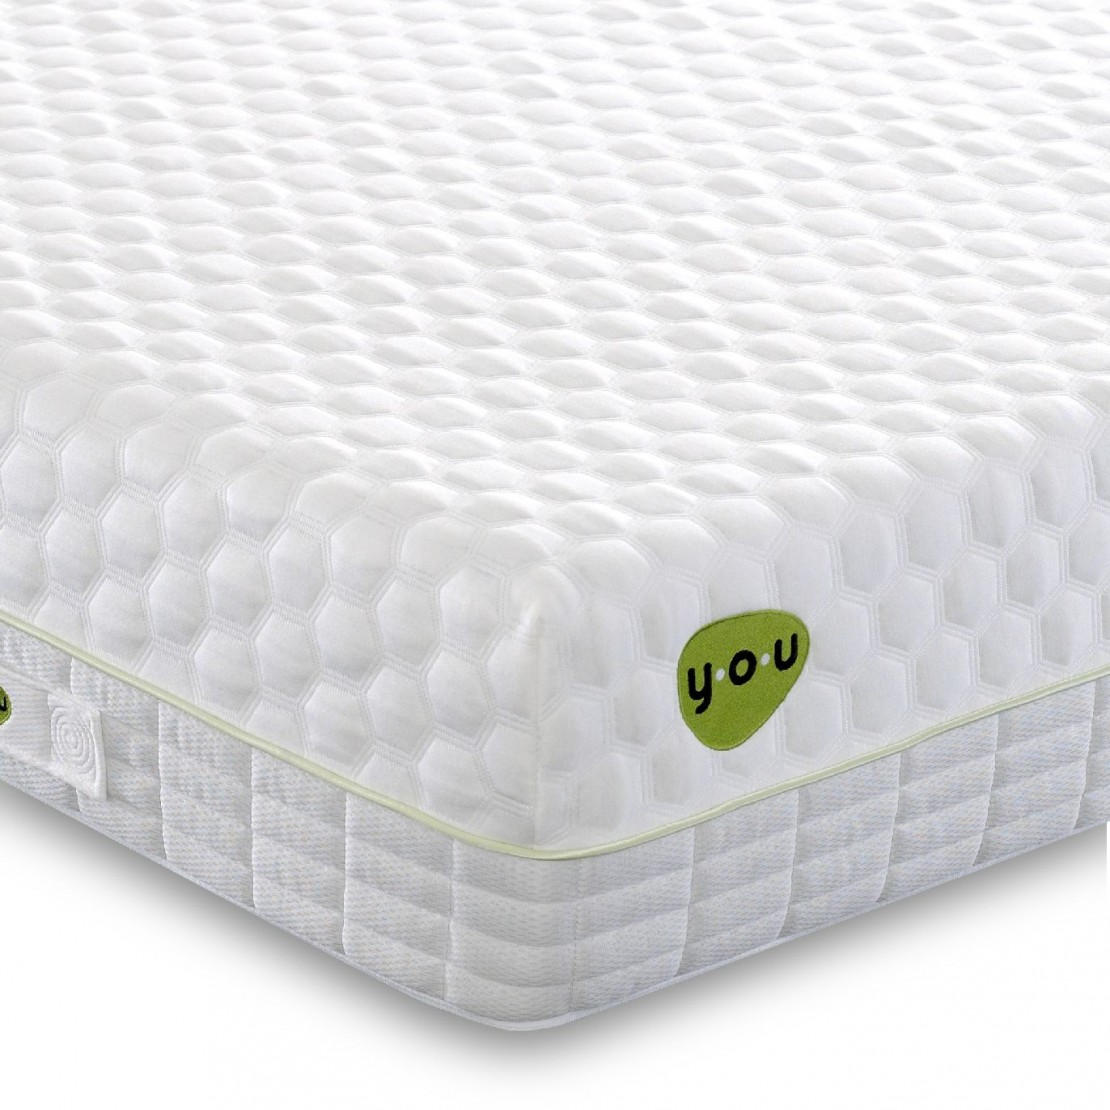 /_images/product-photos/breasley-you-perfect-number-10-mattress-a.jpg